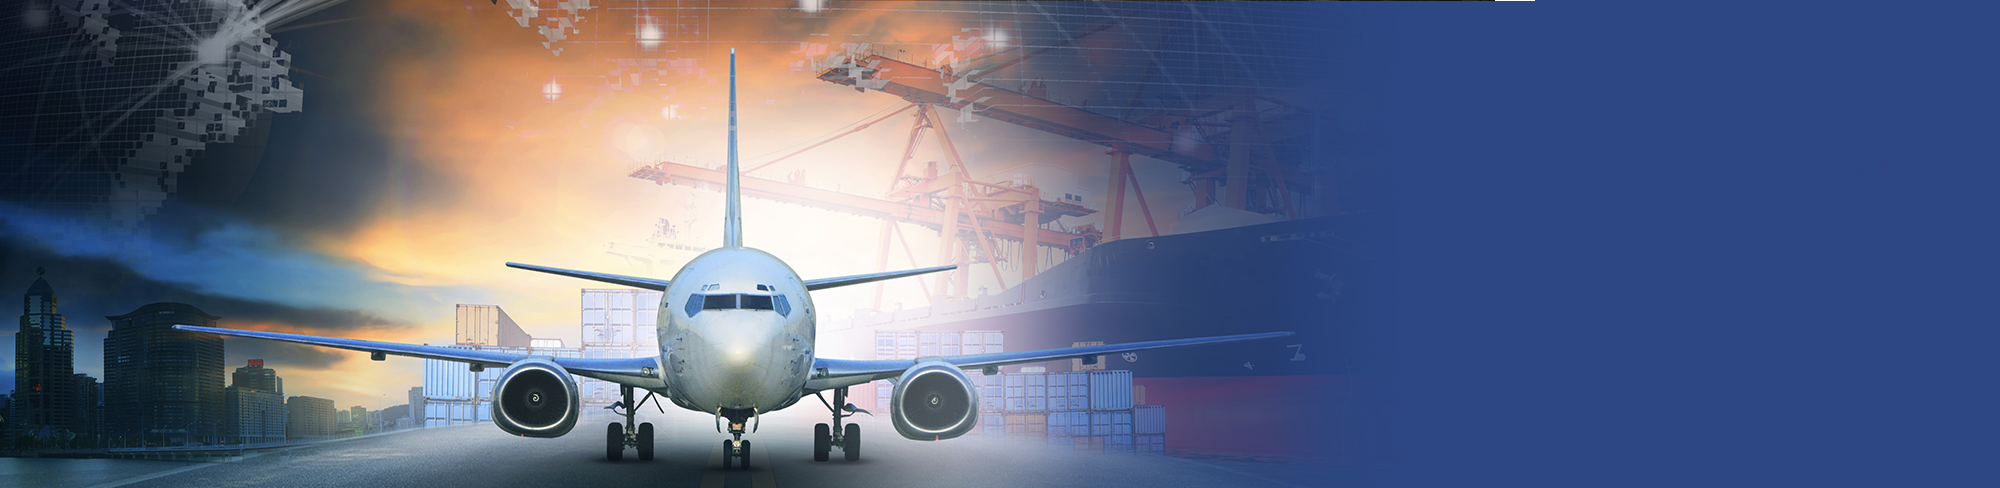 Air Shipping Header Image.png